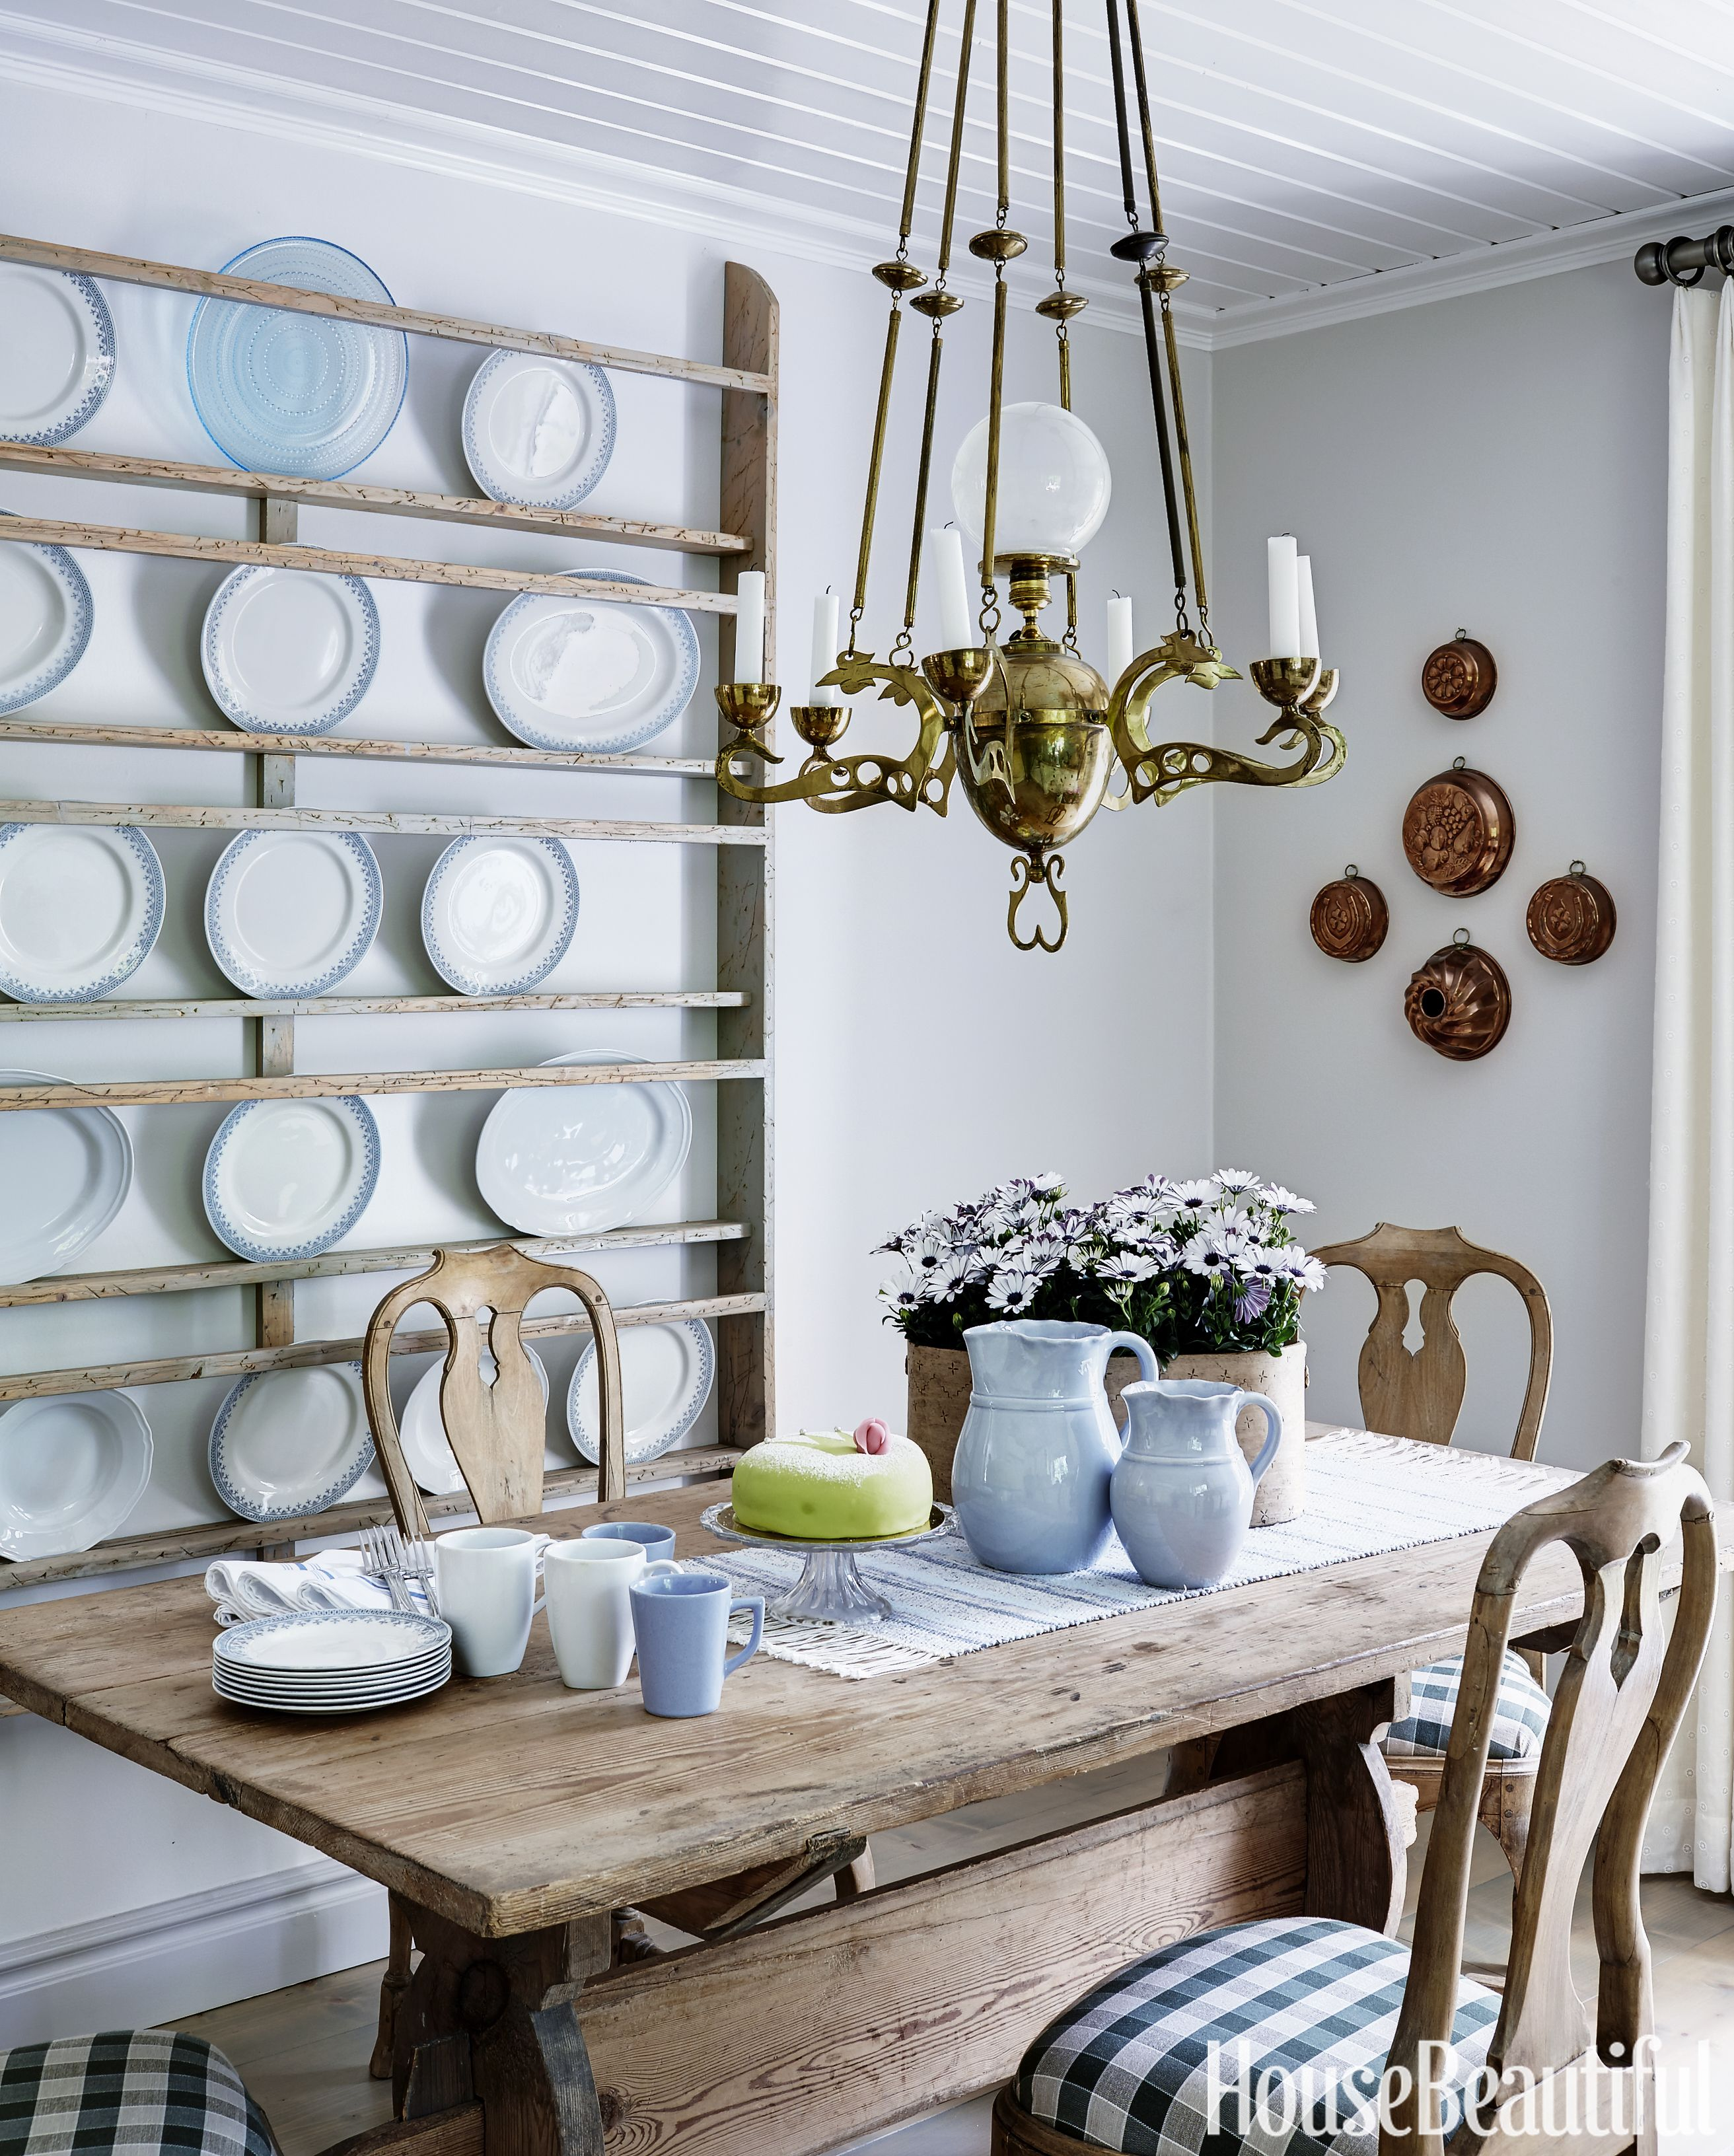 Swedish Decorating This Home Will Convince You To Decorate Swedish Style Stunning